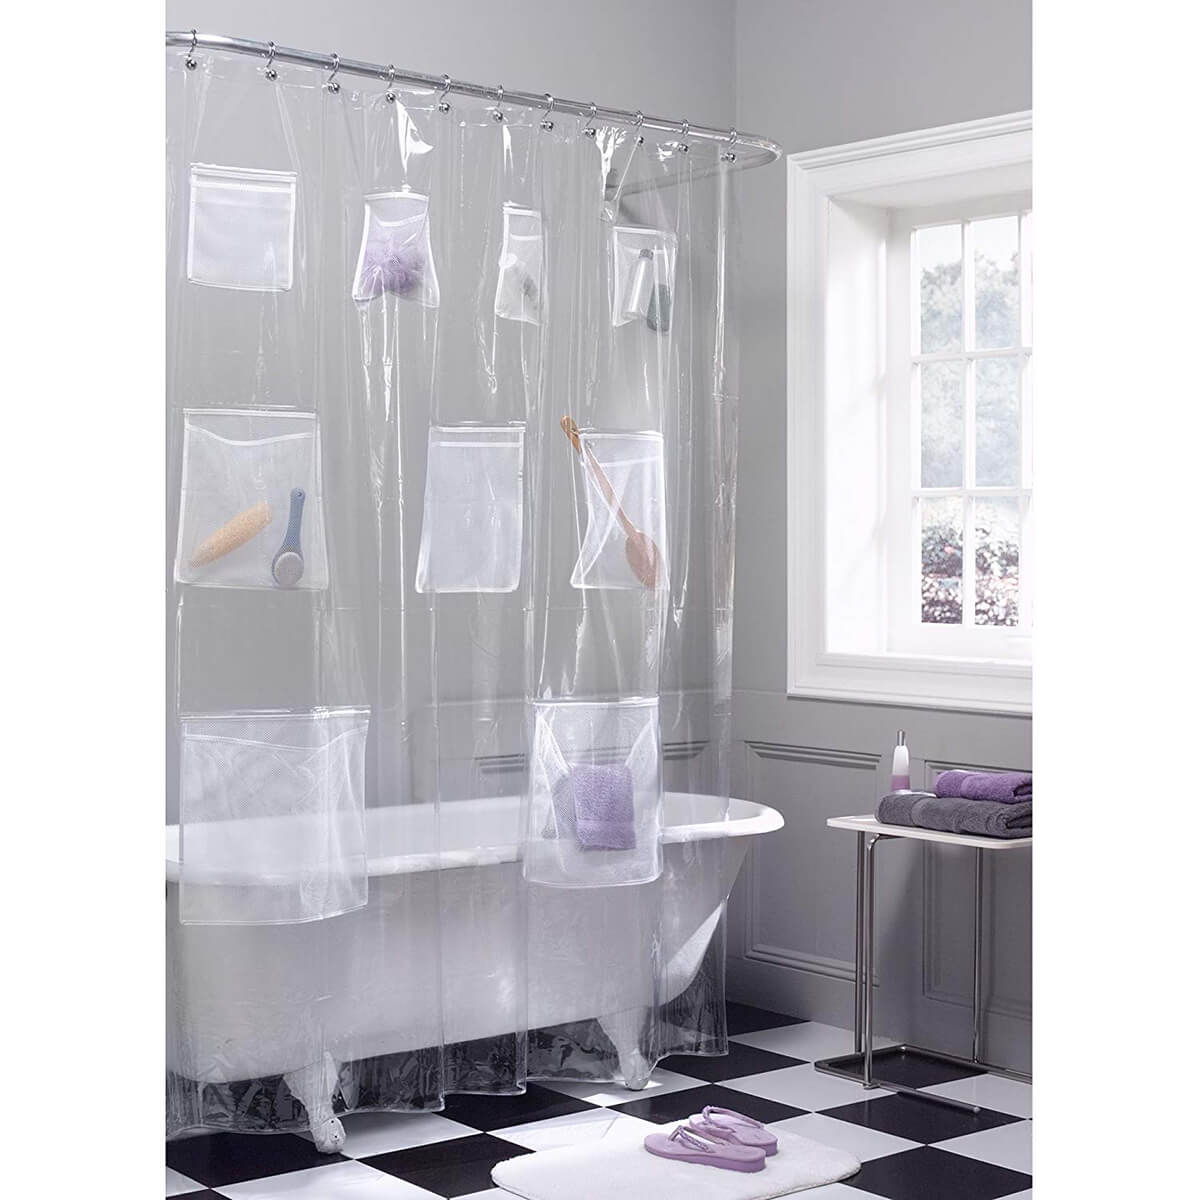 Quirky and Clever Shower Curtain Storage